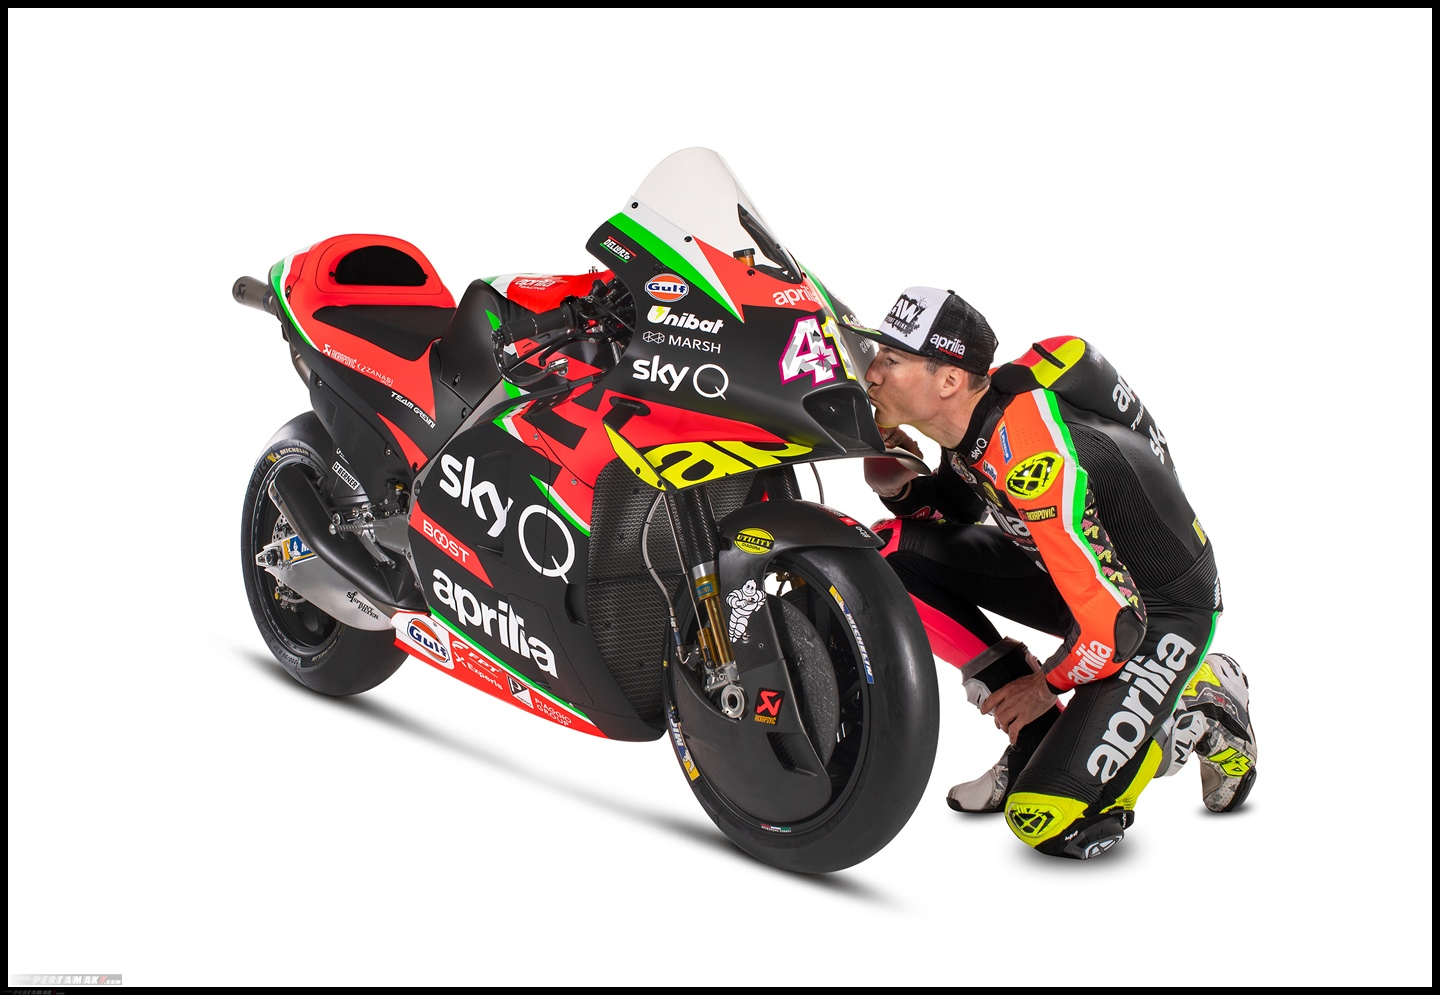 Aleix Espargaro Wallpaper Aprilia RS-GP MotoGP 2020